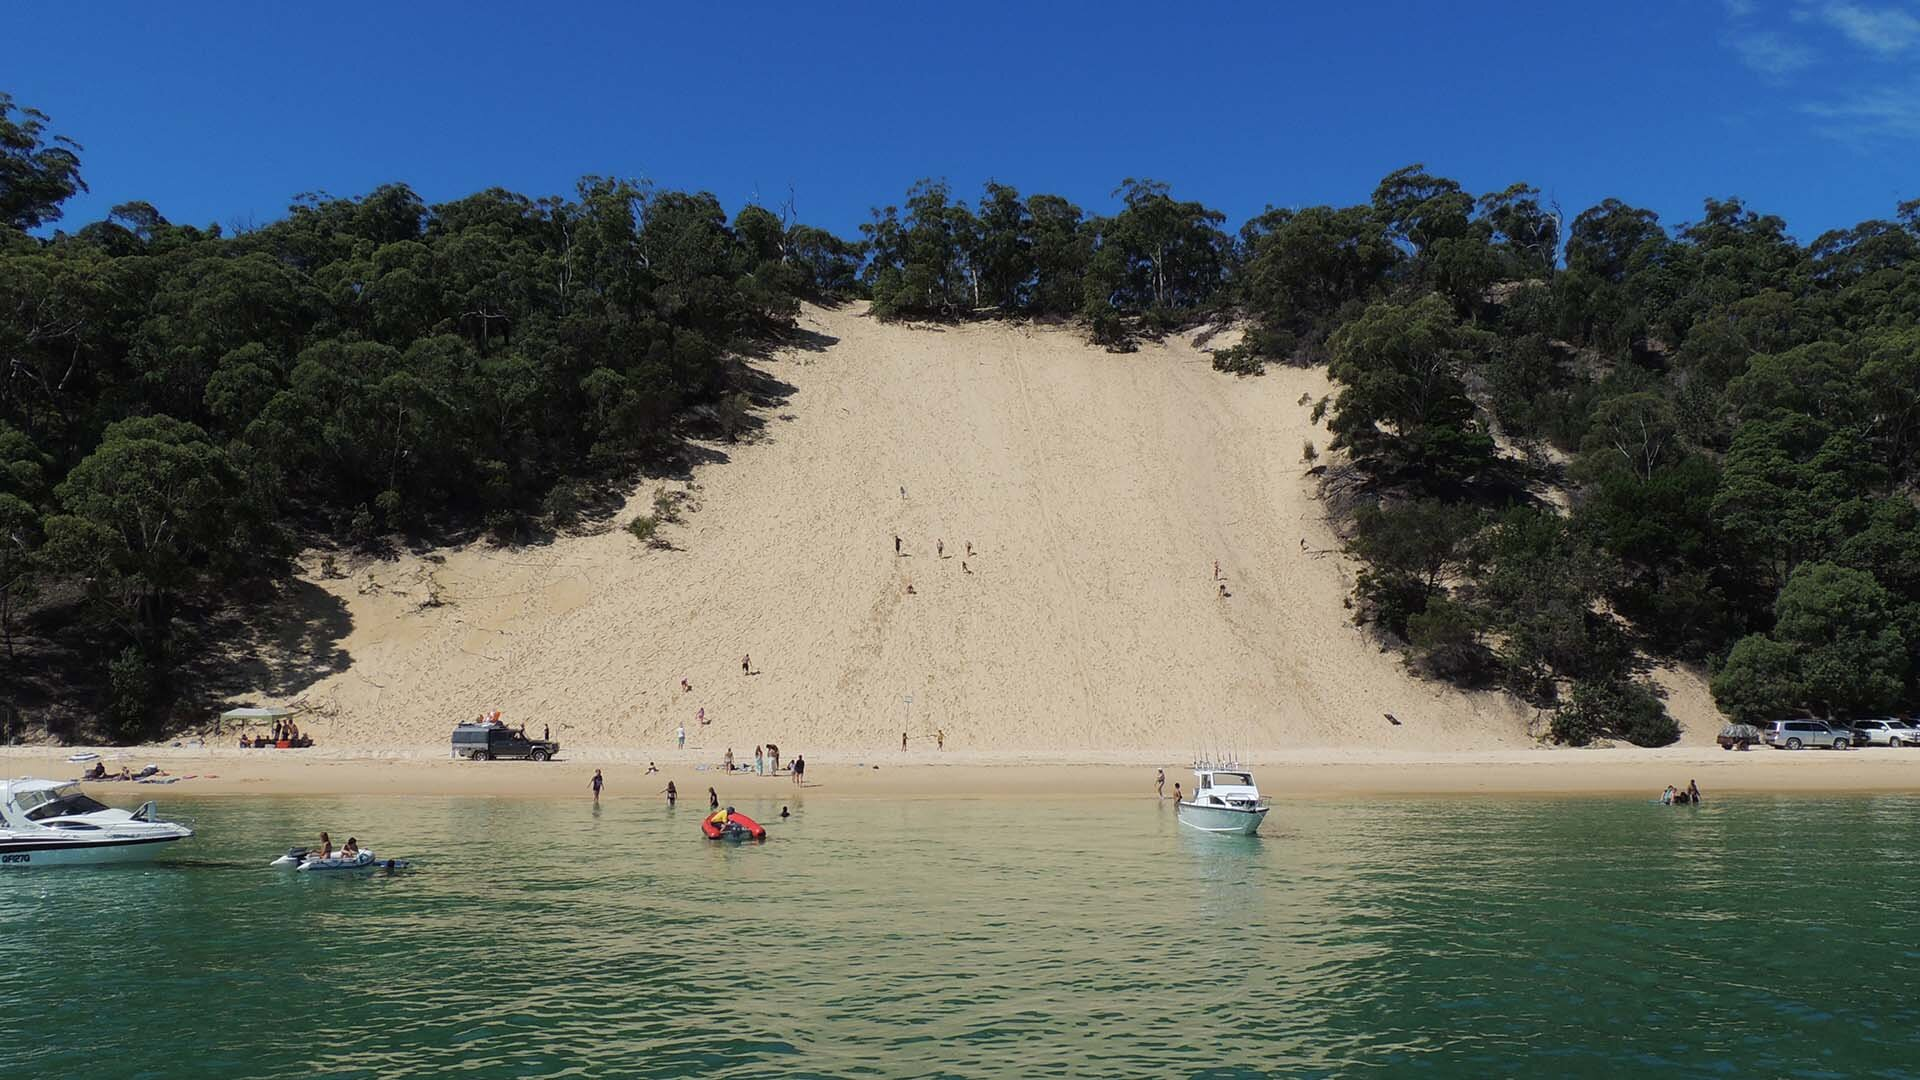 Cowan Cowan, Moreton Island, Moreton Island, © copyright 06-04-2015, Jody Kreuger, Jody Kreuger, Boating and Diving Officer, Griffith University